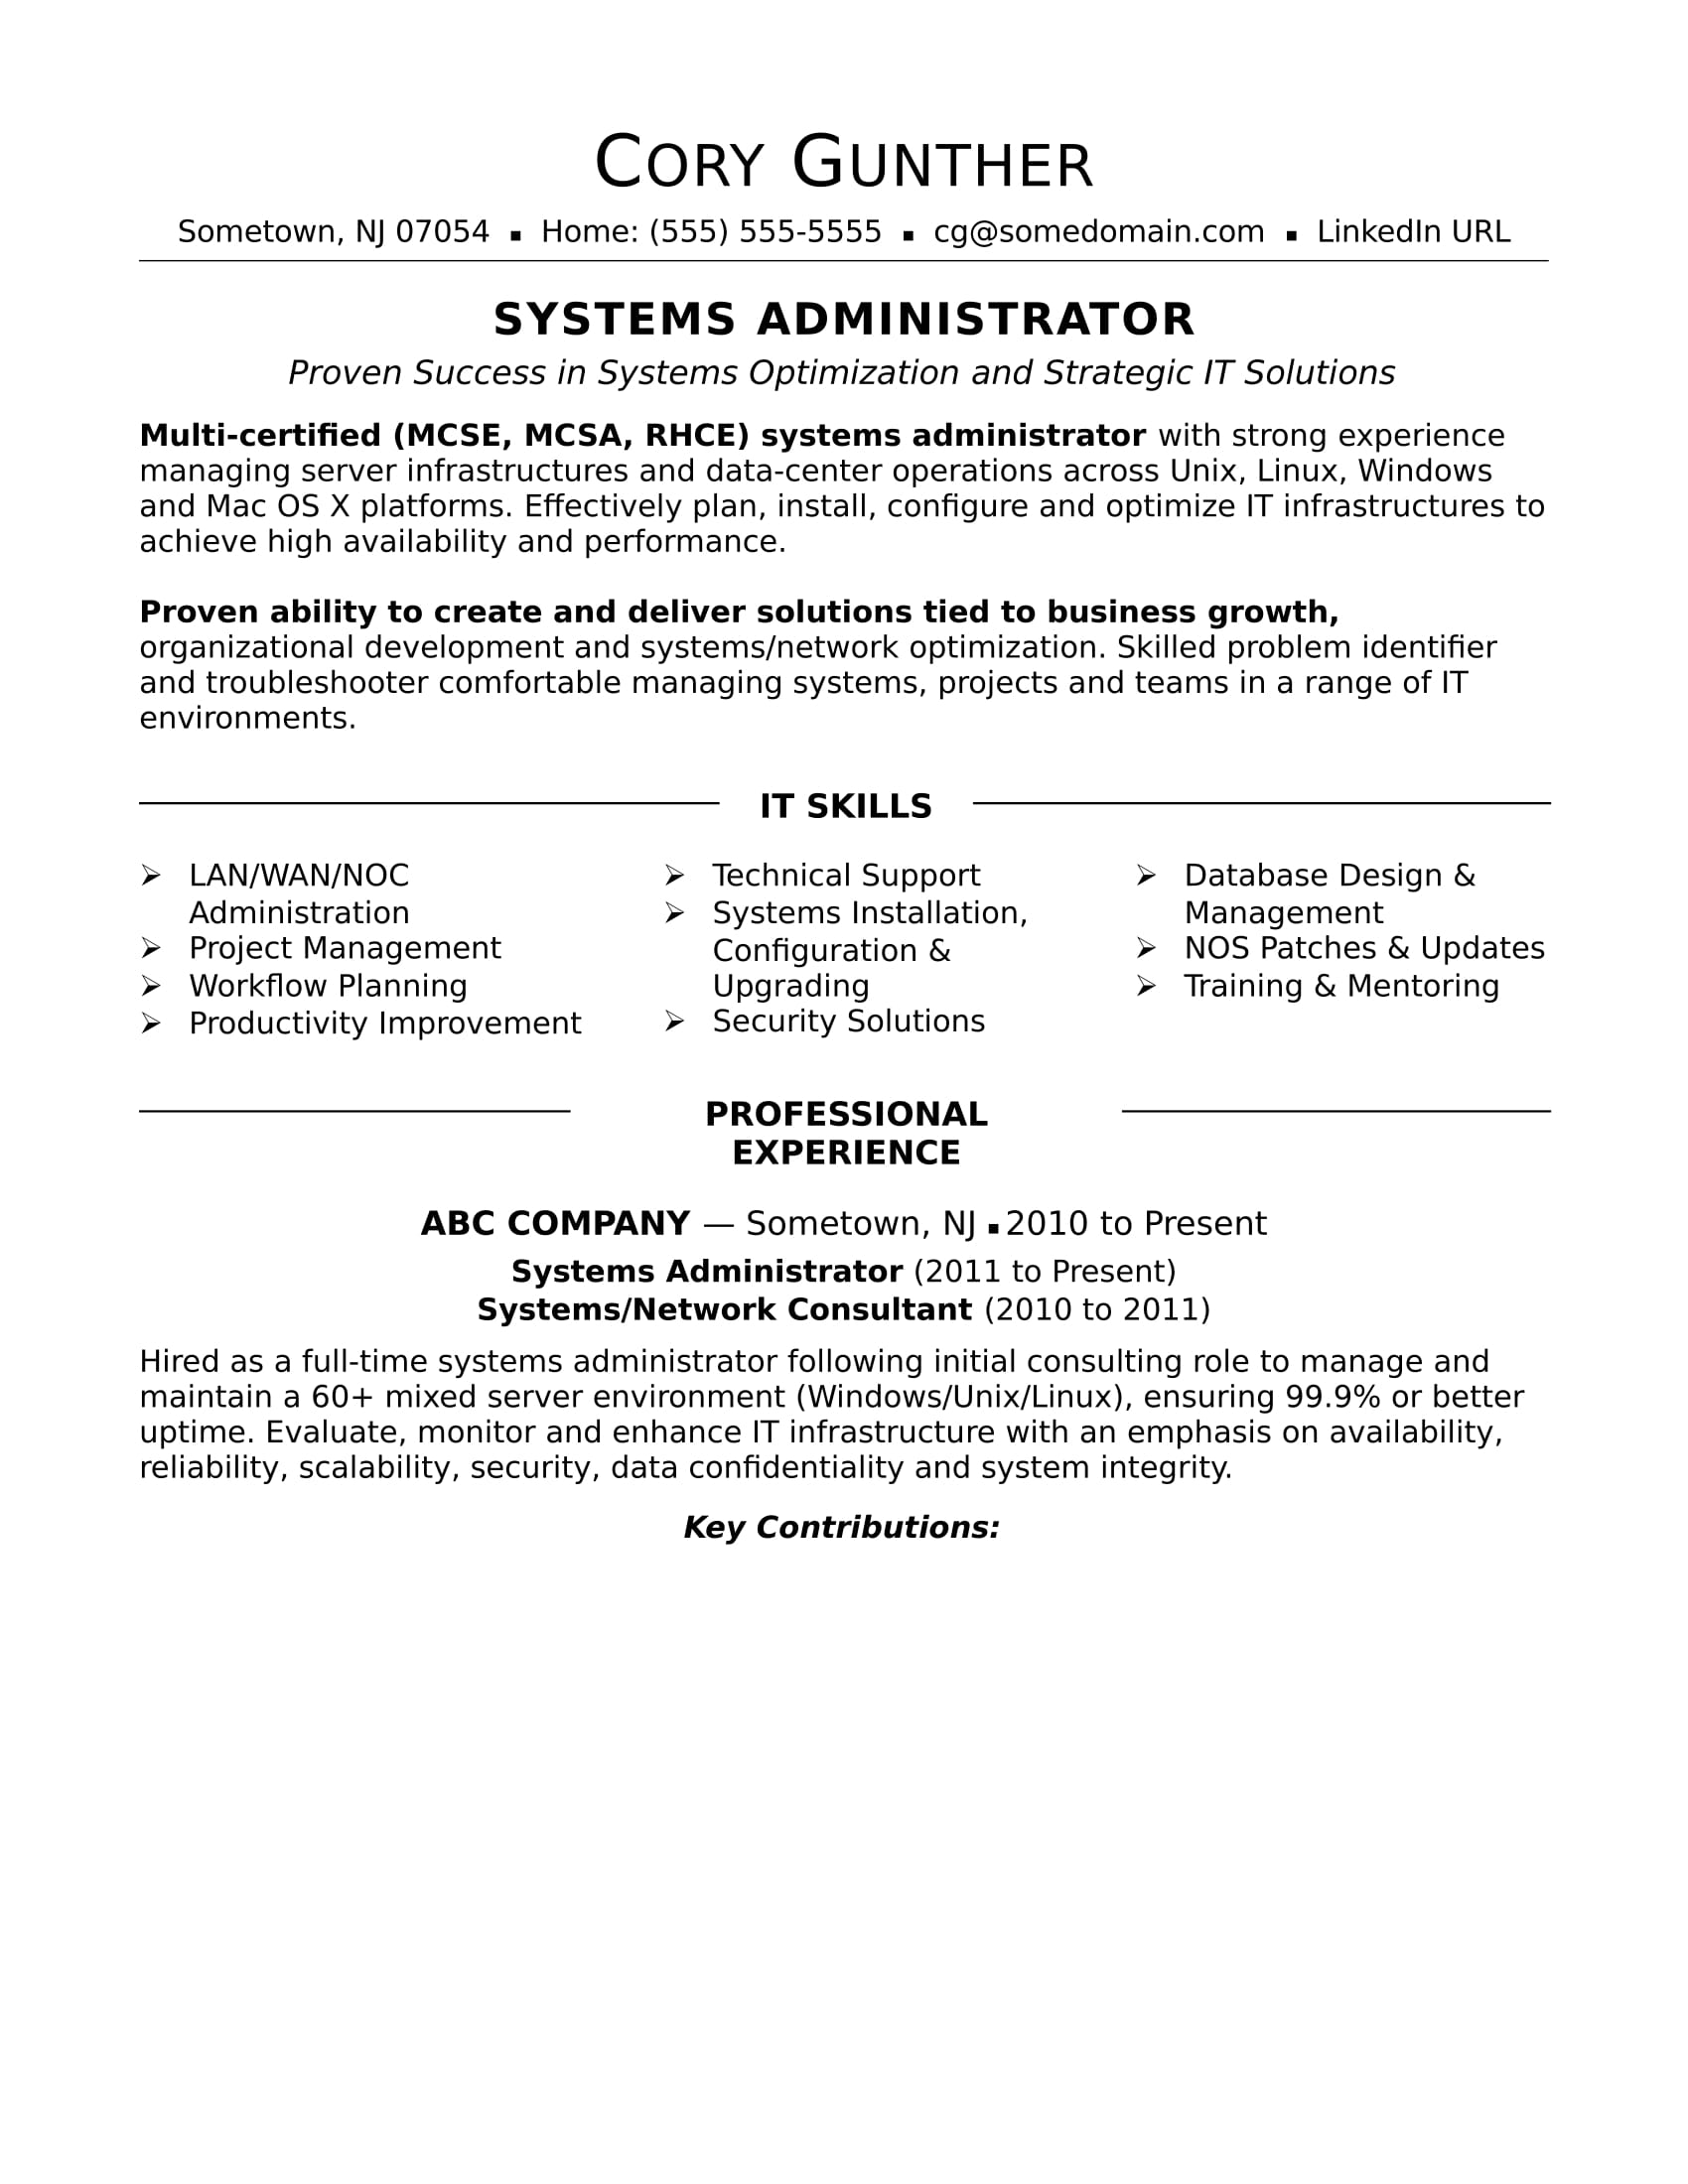 sample resume for an experienced systems administrator monster system quality assurance Resume System Administrator Resume Sample